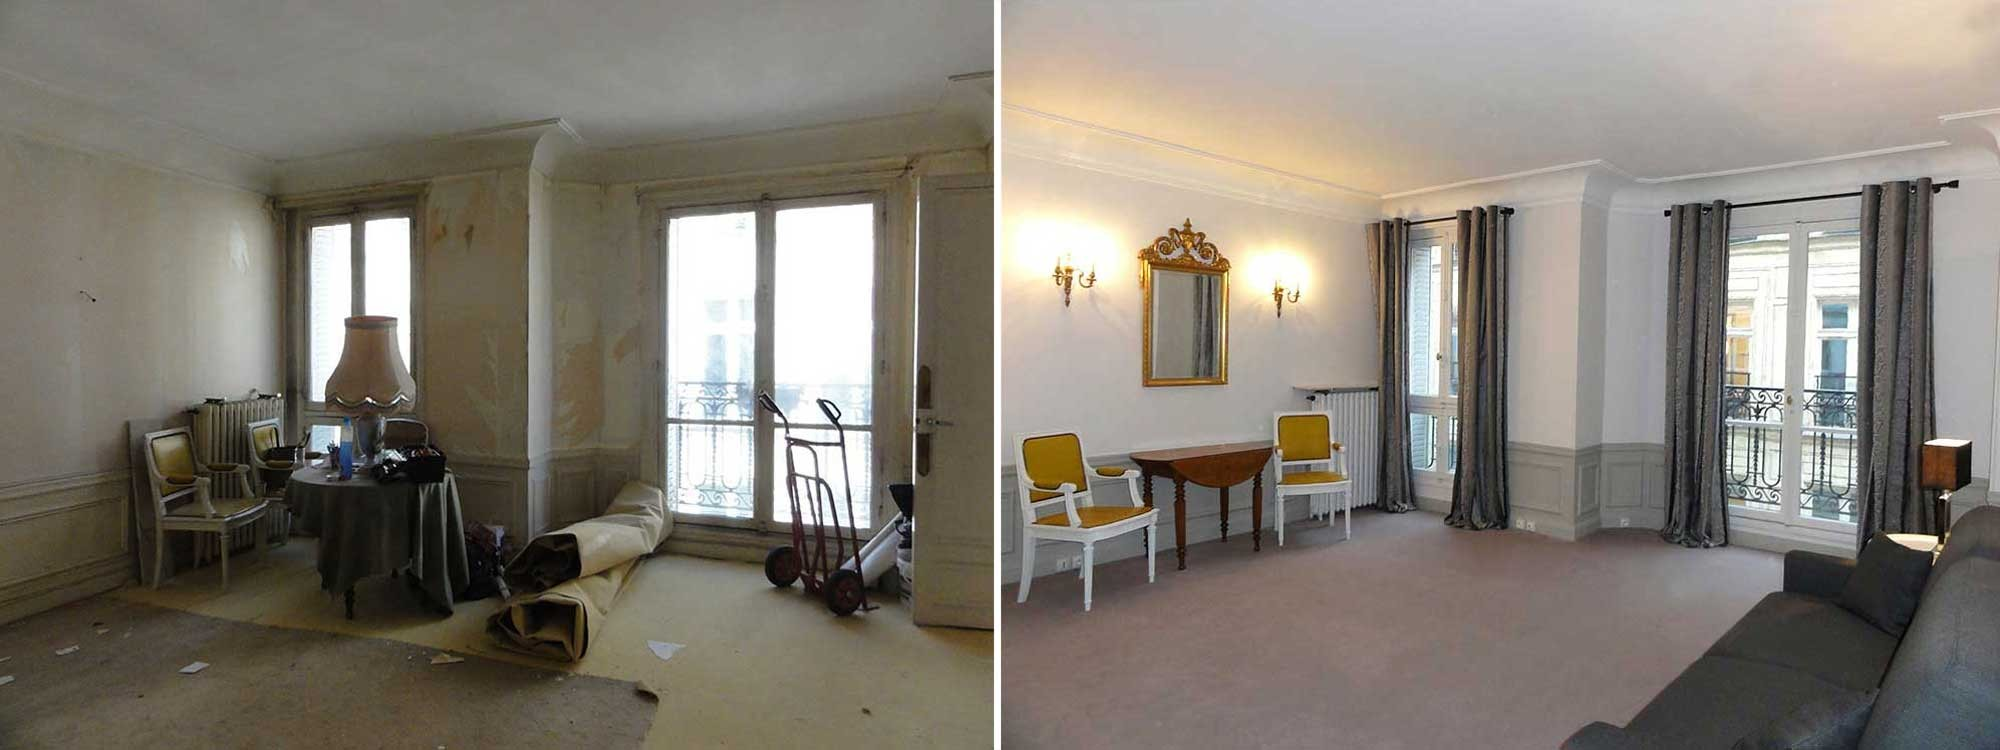 Exemples avant apr s r novation int rieure lgelc paris - Renovation avant apres ...